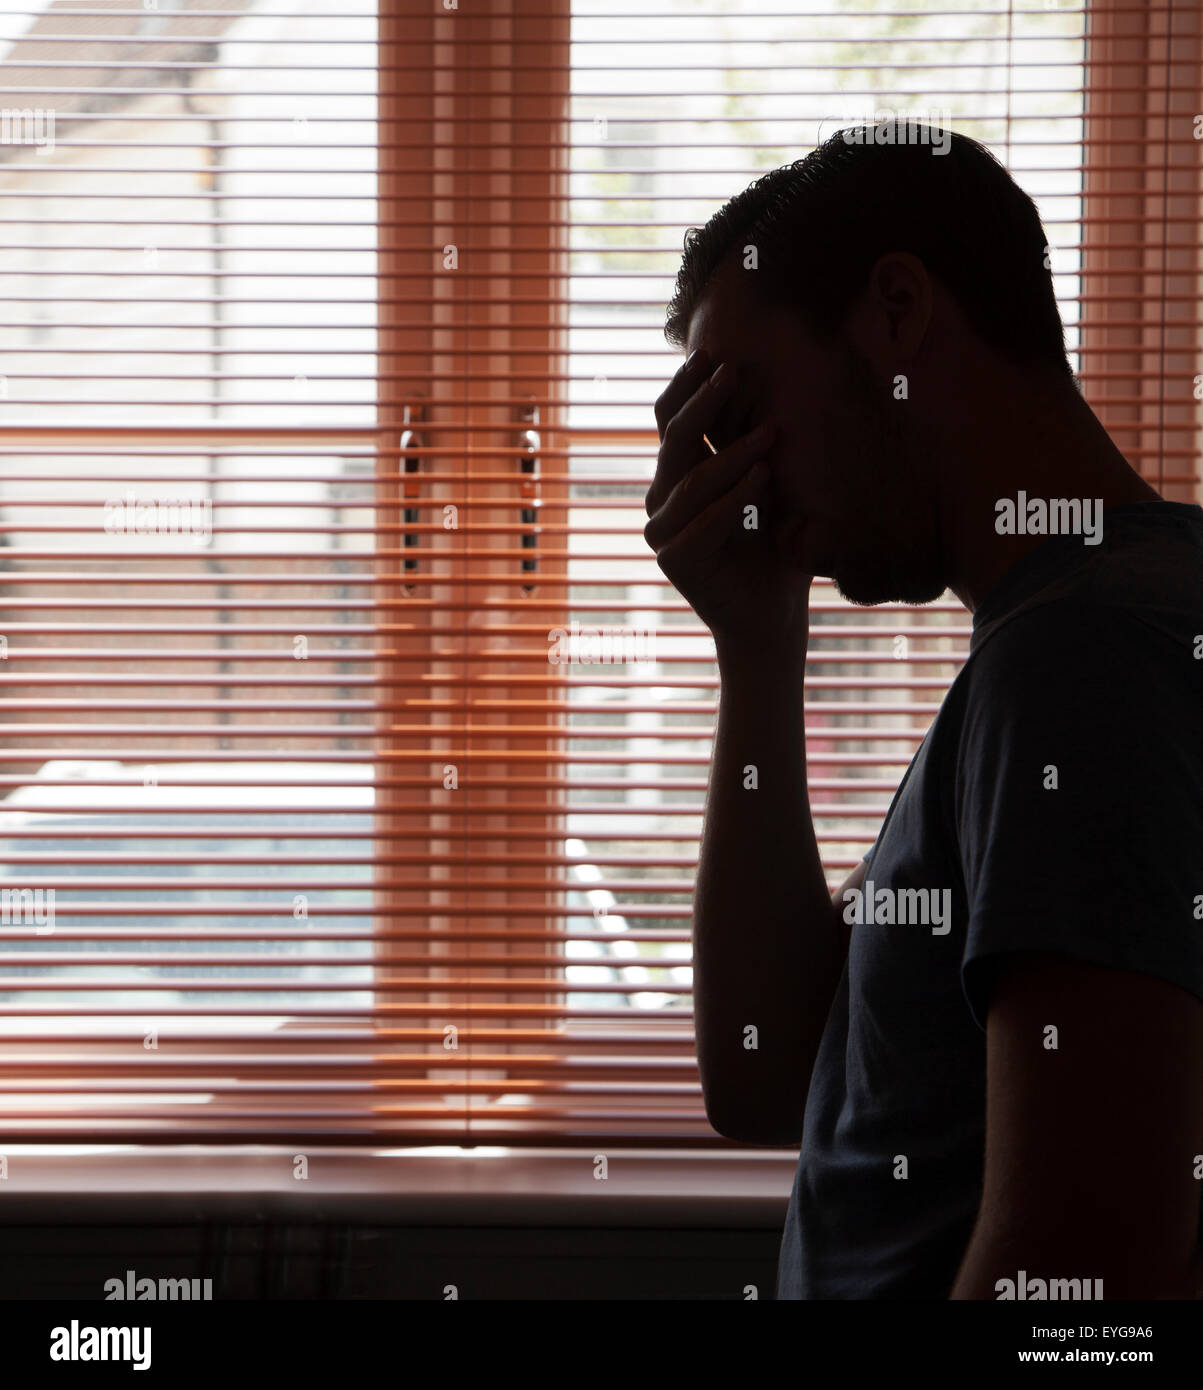 Silhouette of young male by a window. - Stock Image